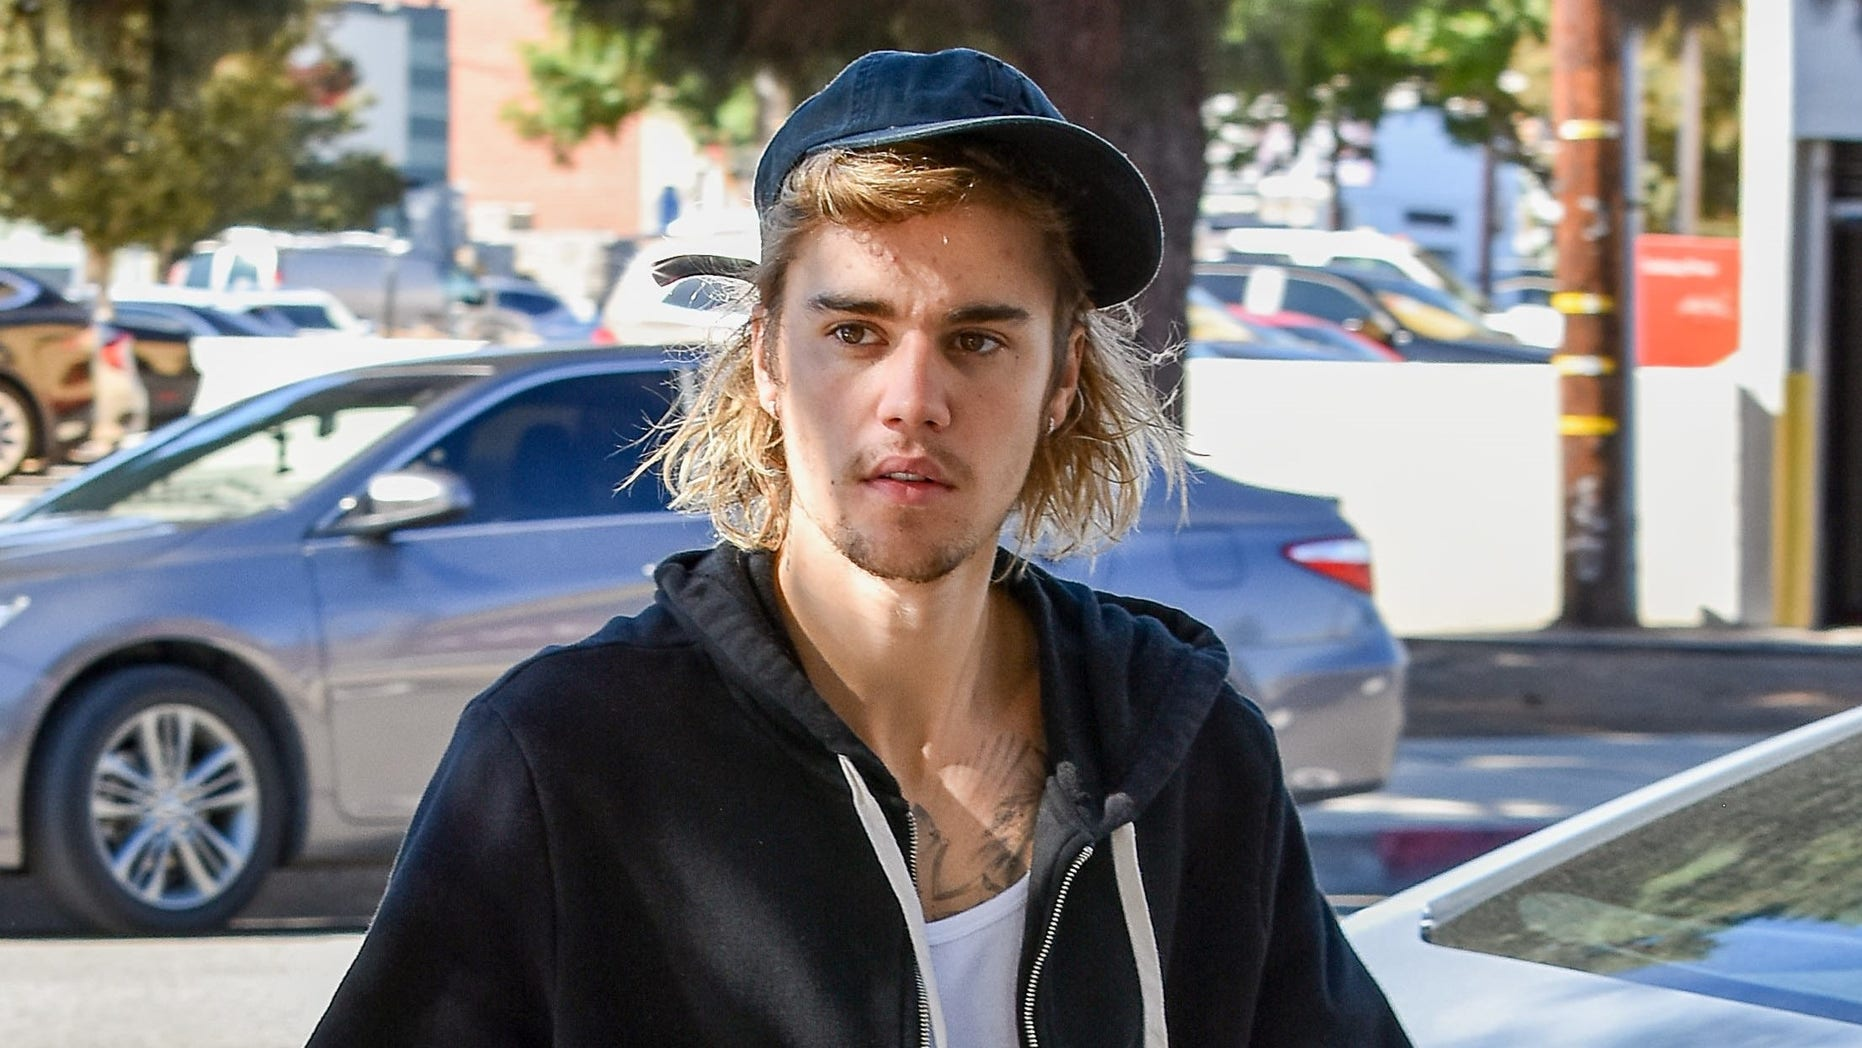 Justin Bieber's New Face Tattoo Finally Revealed